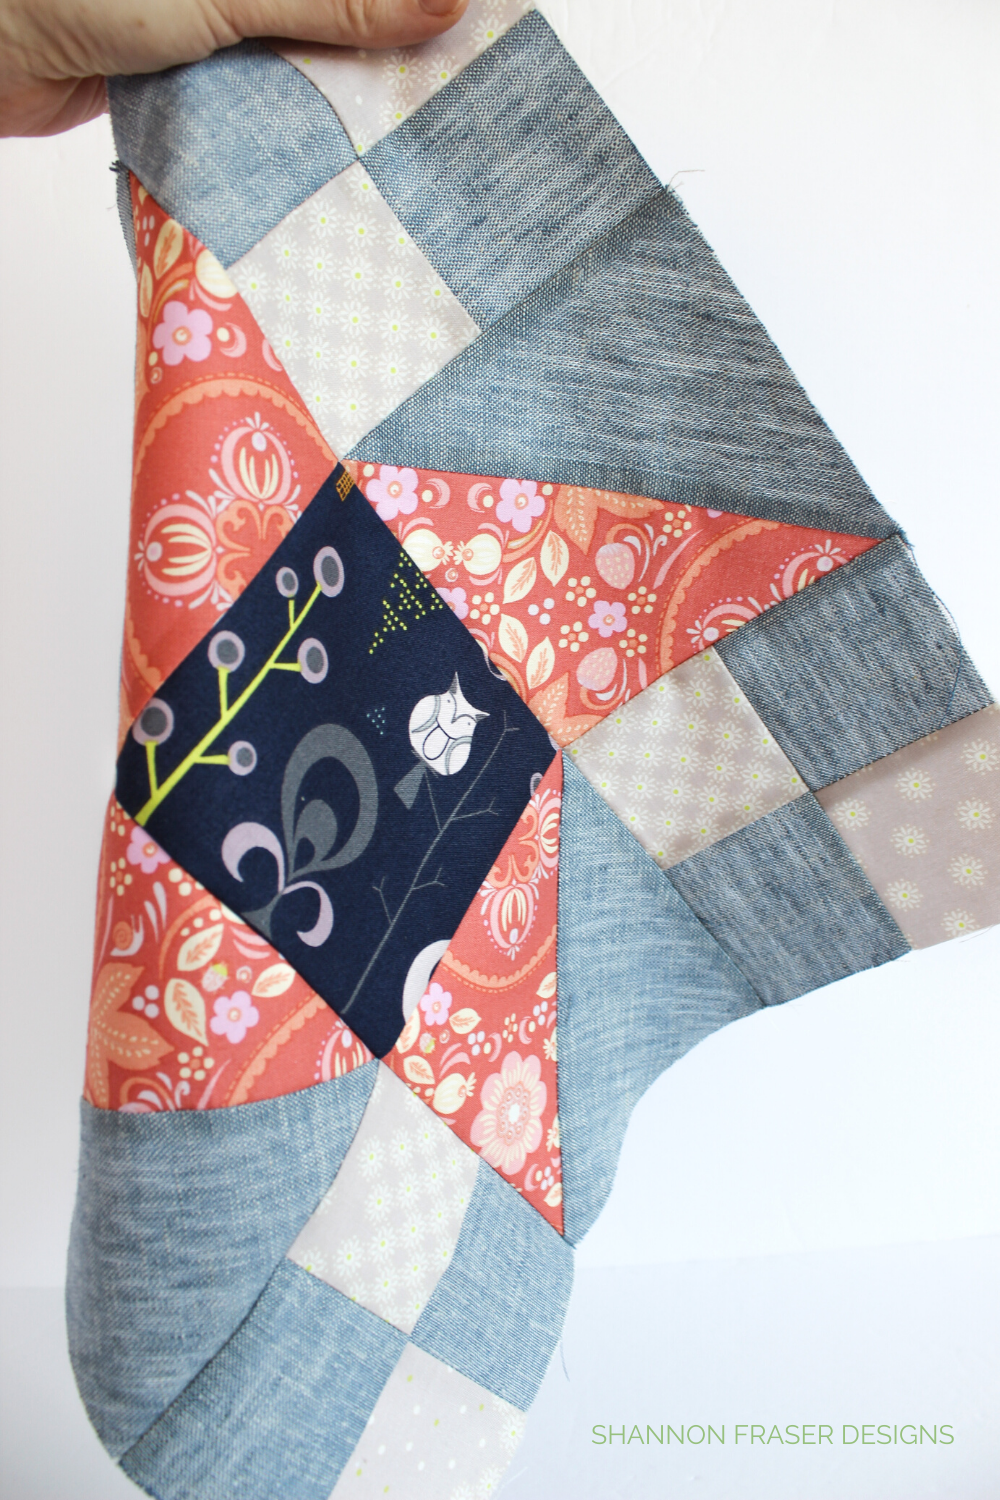 Close-up of the Irish Vortex quilt block in coral, cream, navy and chambray linen | Irish Vortex quilt pattern | Shannon Fraser Designs #quiltblock